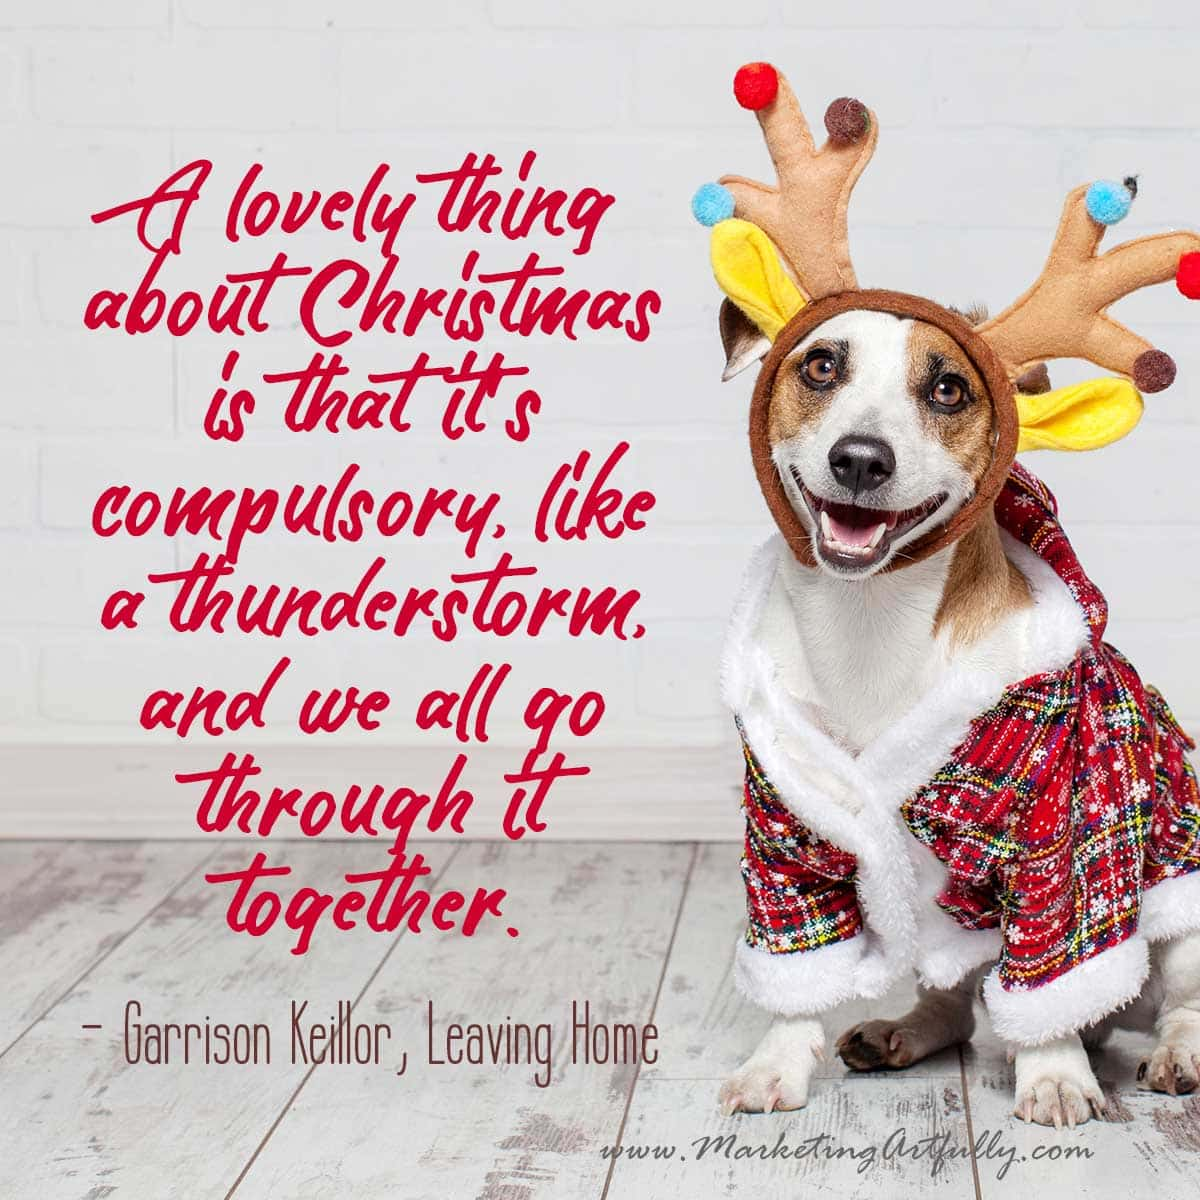 A lovely thing about Christmas is that it's compulsory, like a thunderstorm, and we all go through it together. - Garrison Keillor, Leaving Home... Christmas Quotes and Sayings For Business